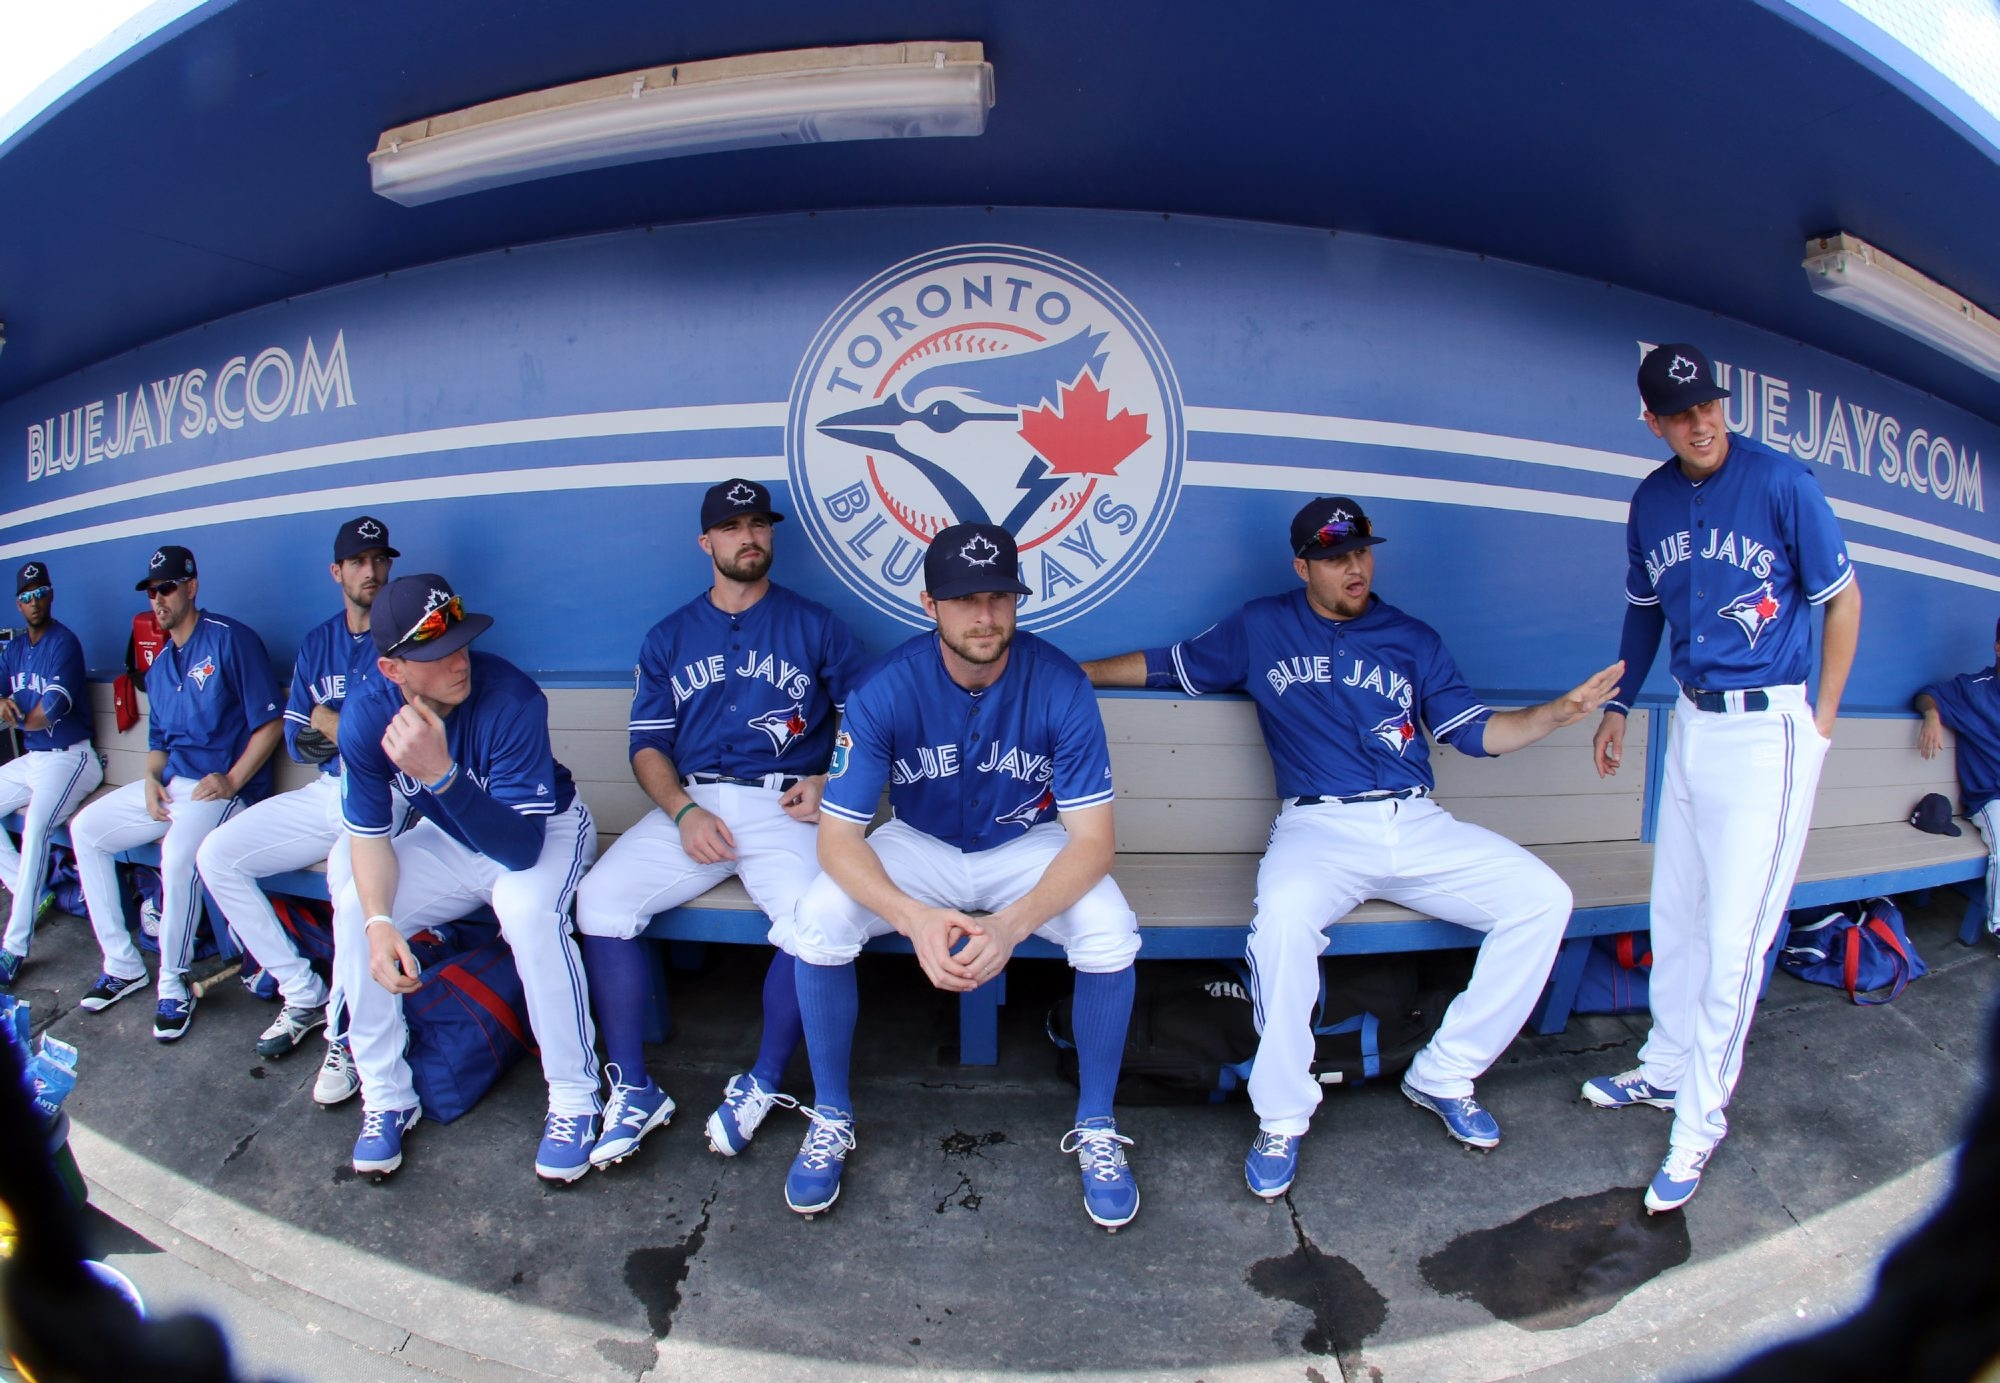 Last year's Buffalo Bisons admit they found inspiration in knowing a place in the Toronto Blue Jays dugout was only a 90-minute drive away.